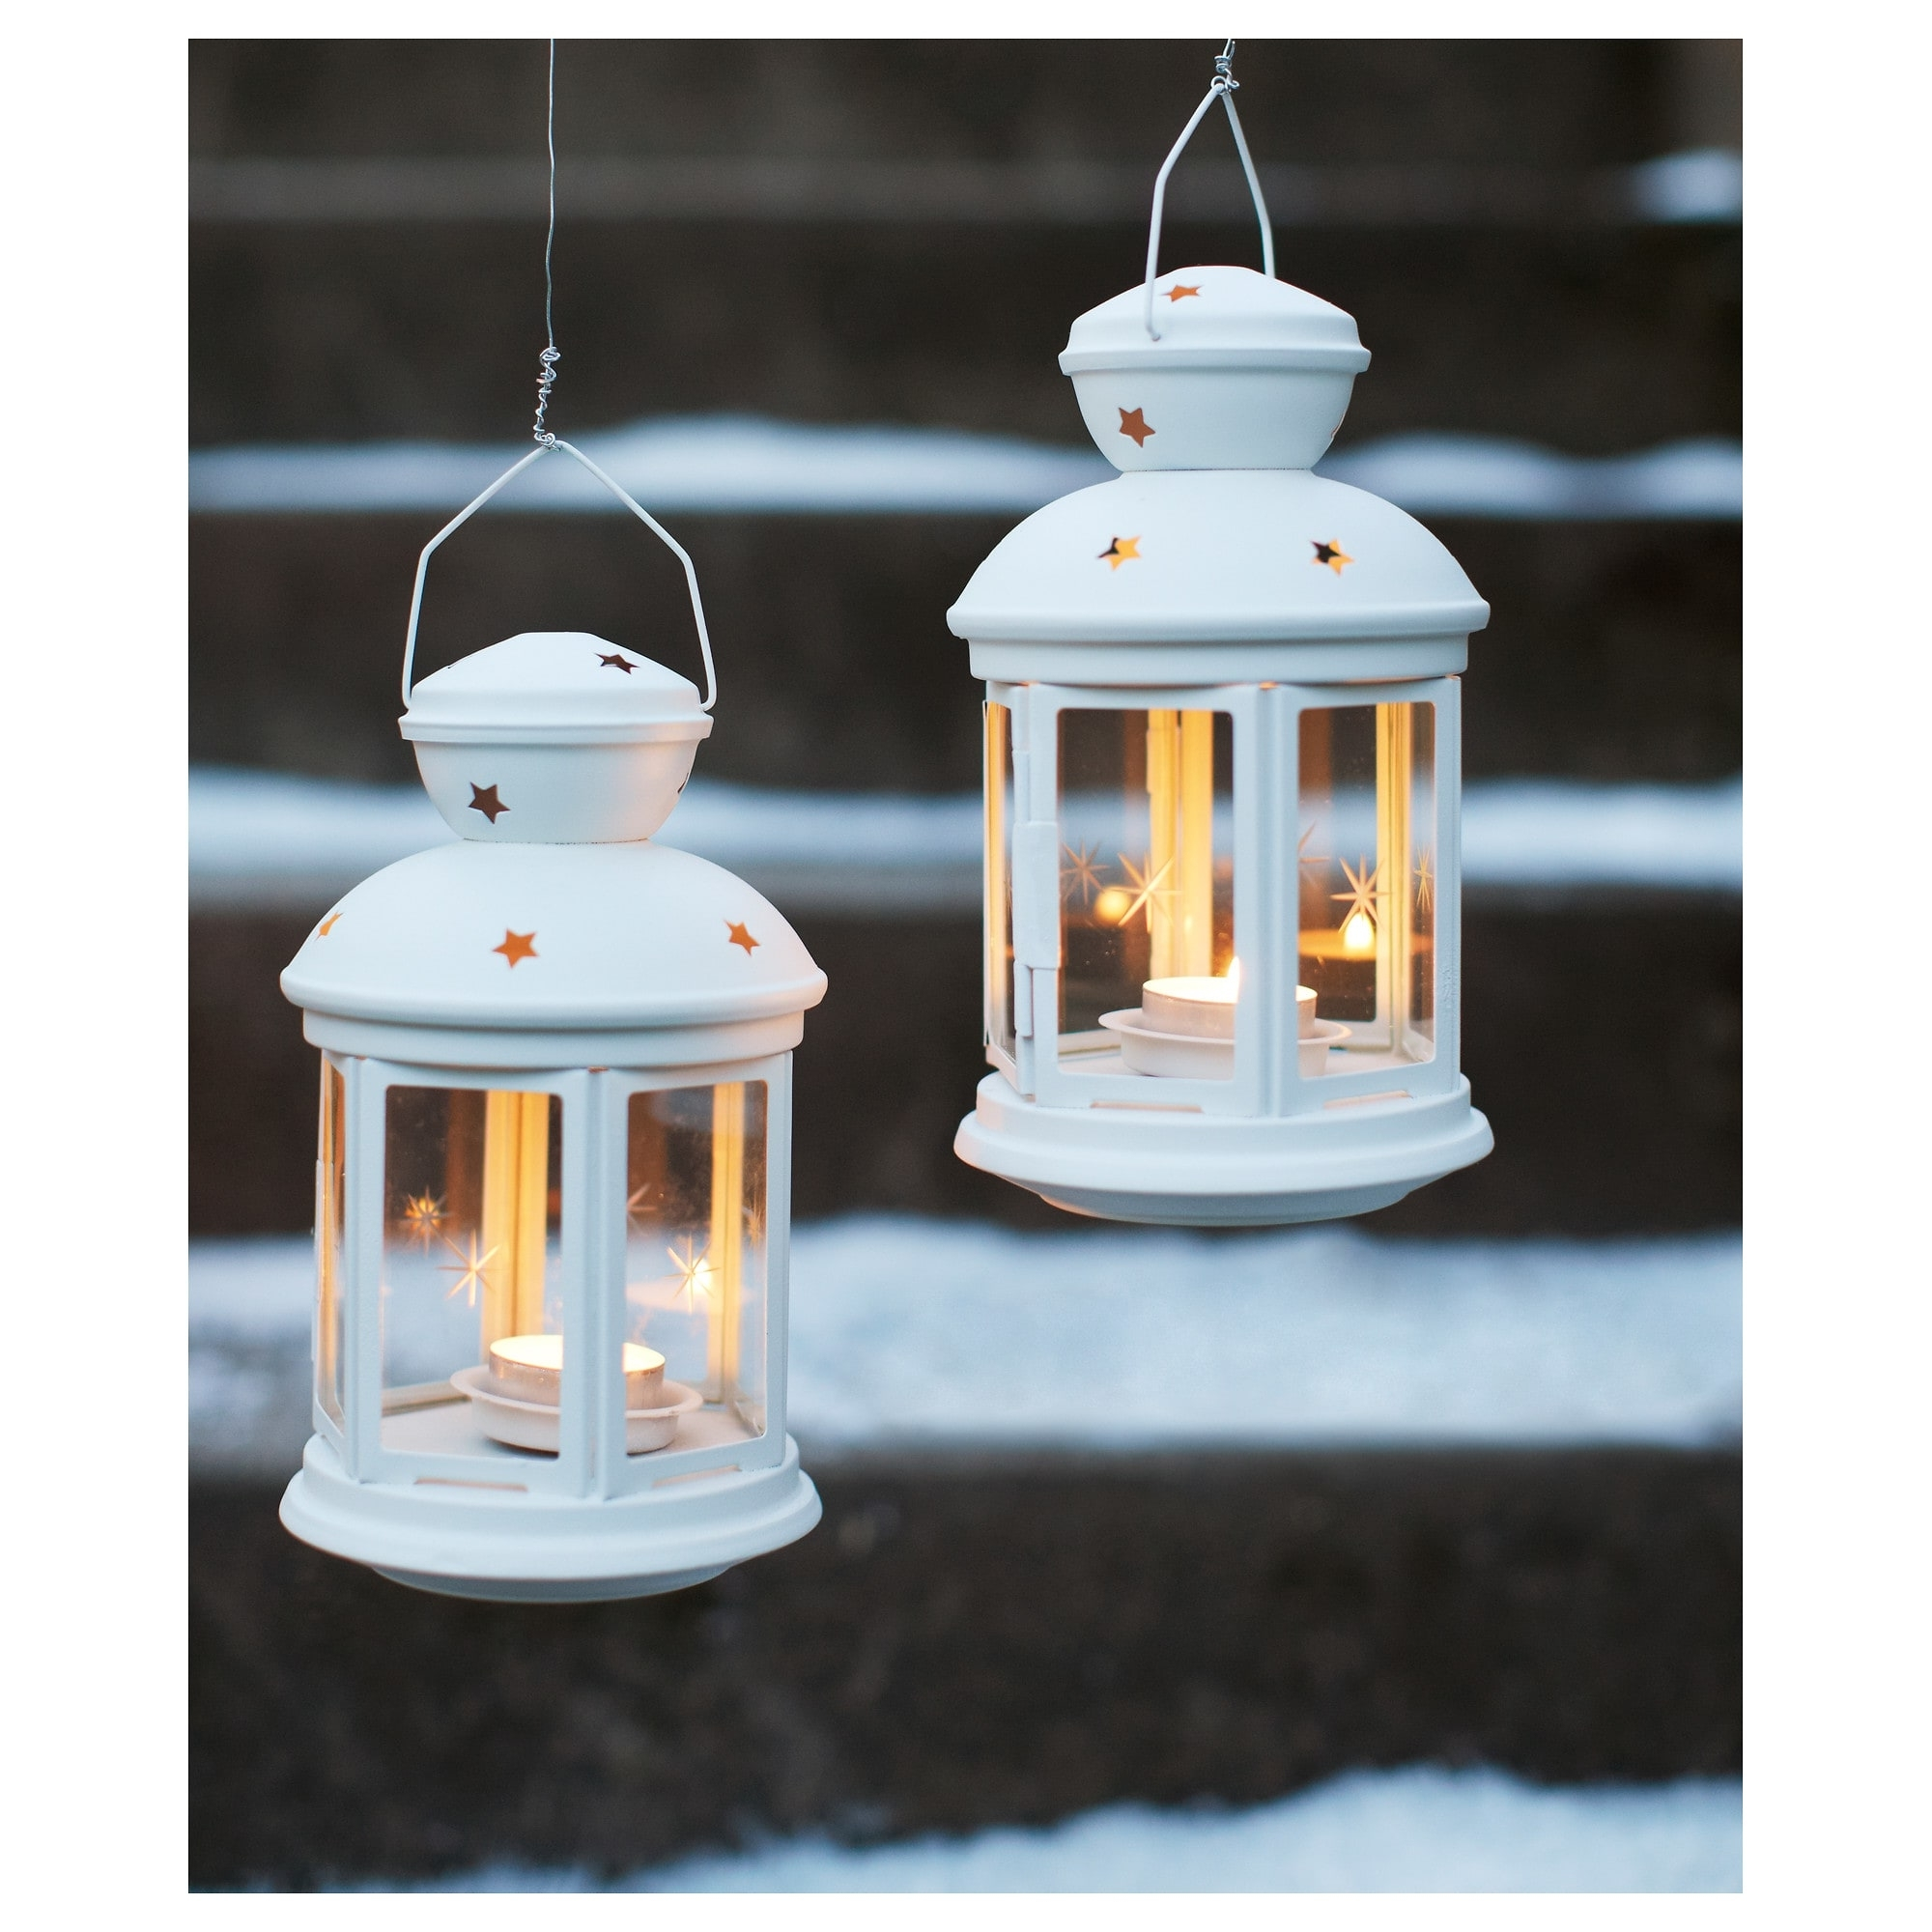 Best And Newest Rotera Lantern For Tealight In/outdoor White 21 Cm – Ikea Pertaining To Ikea Outdoor Lanterns (Gallery 12 of 20)